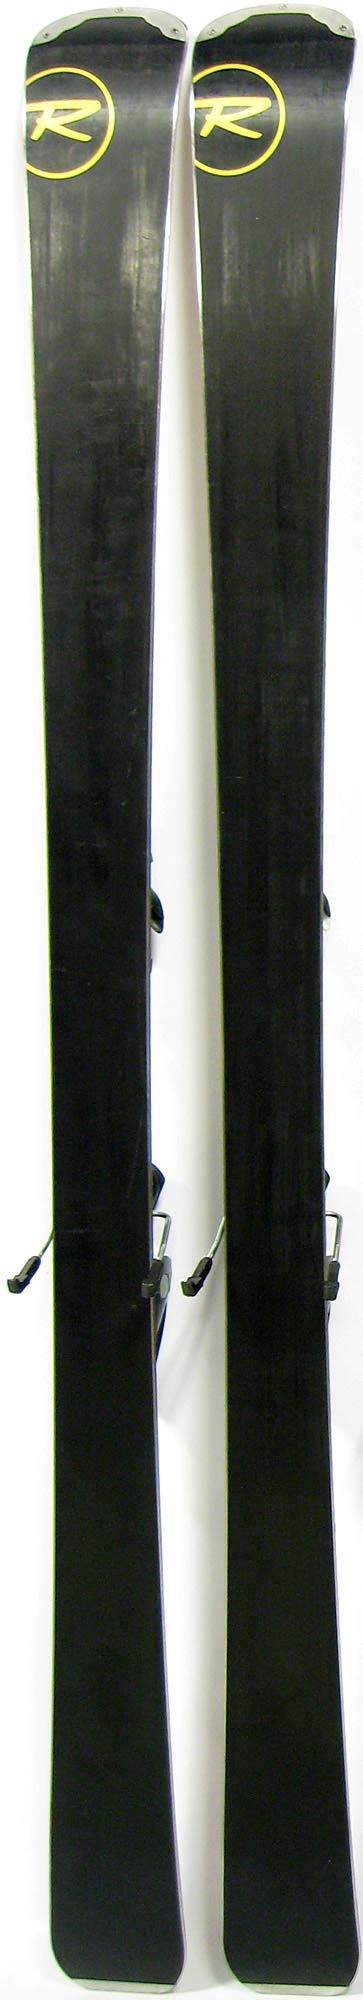 Bases of 2012 Rossignol Temptation 82 Skis For Sale